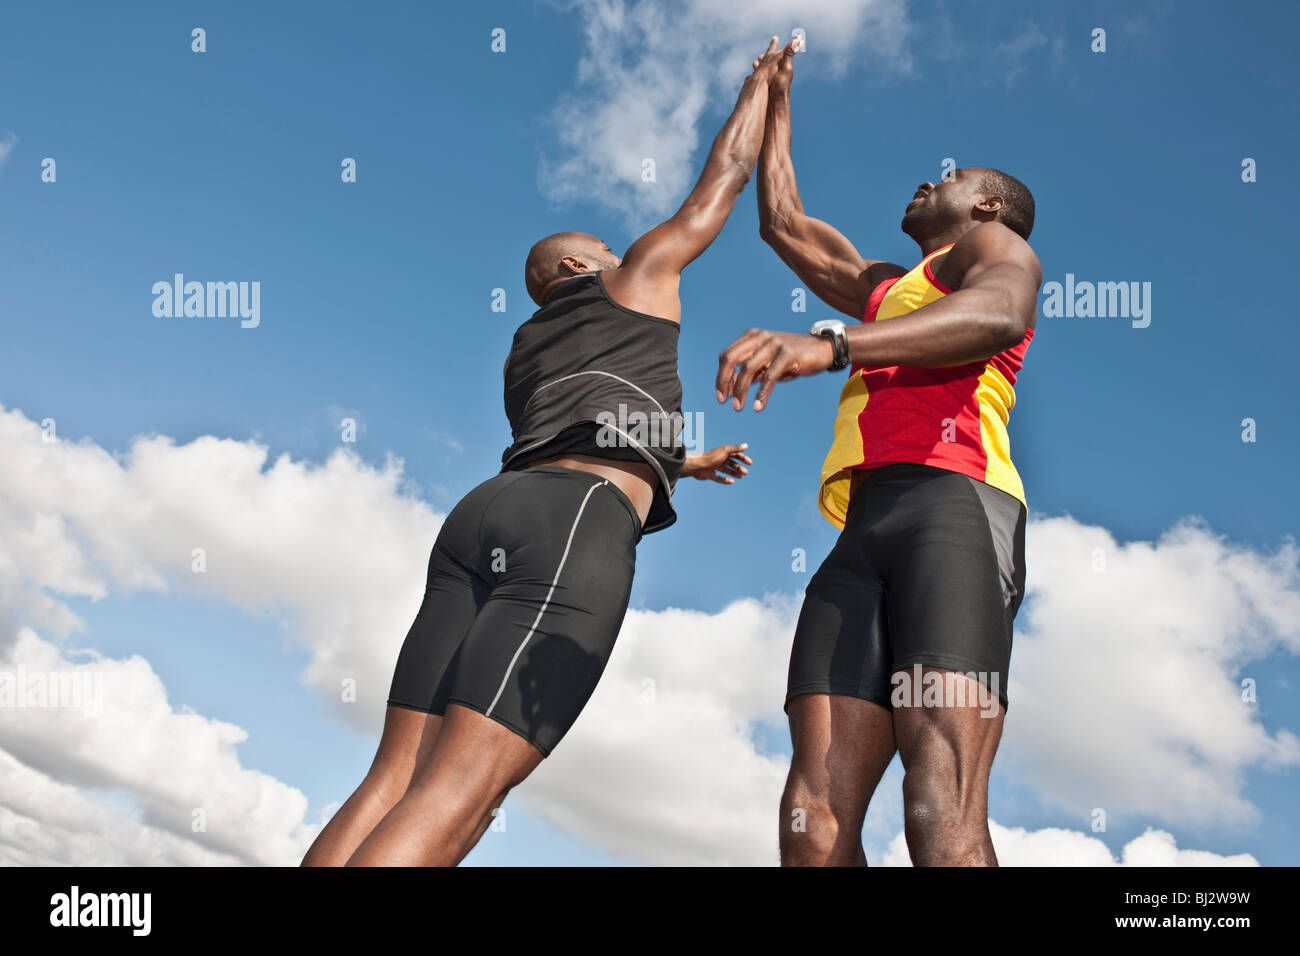 2 male athletes jumping with high 50s - Stock Image